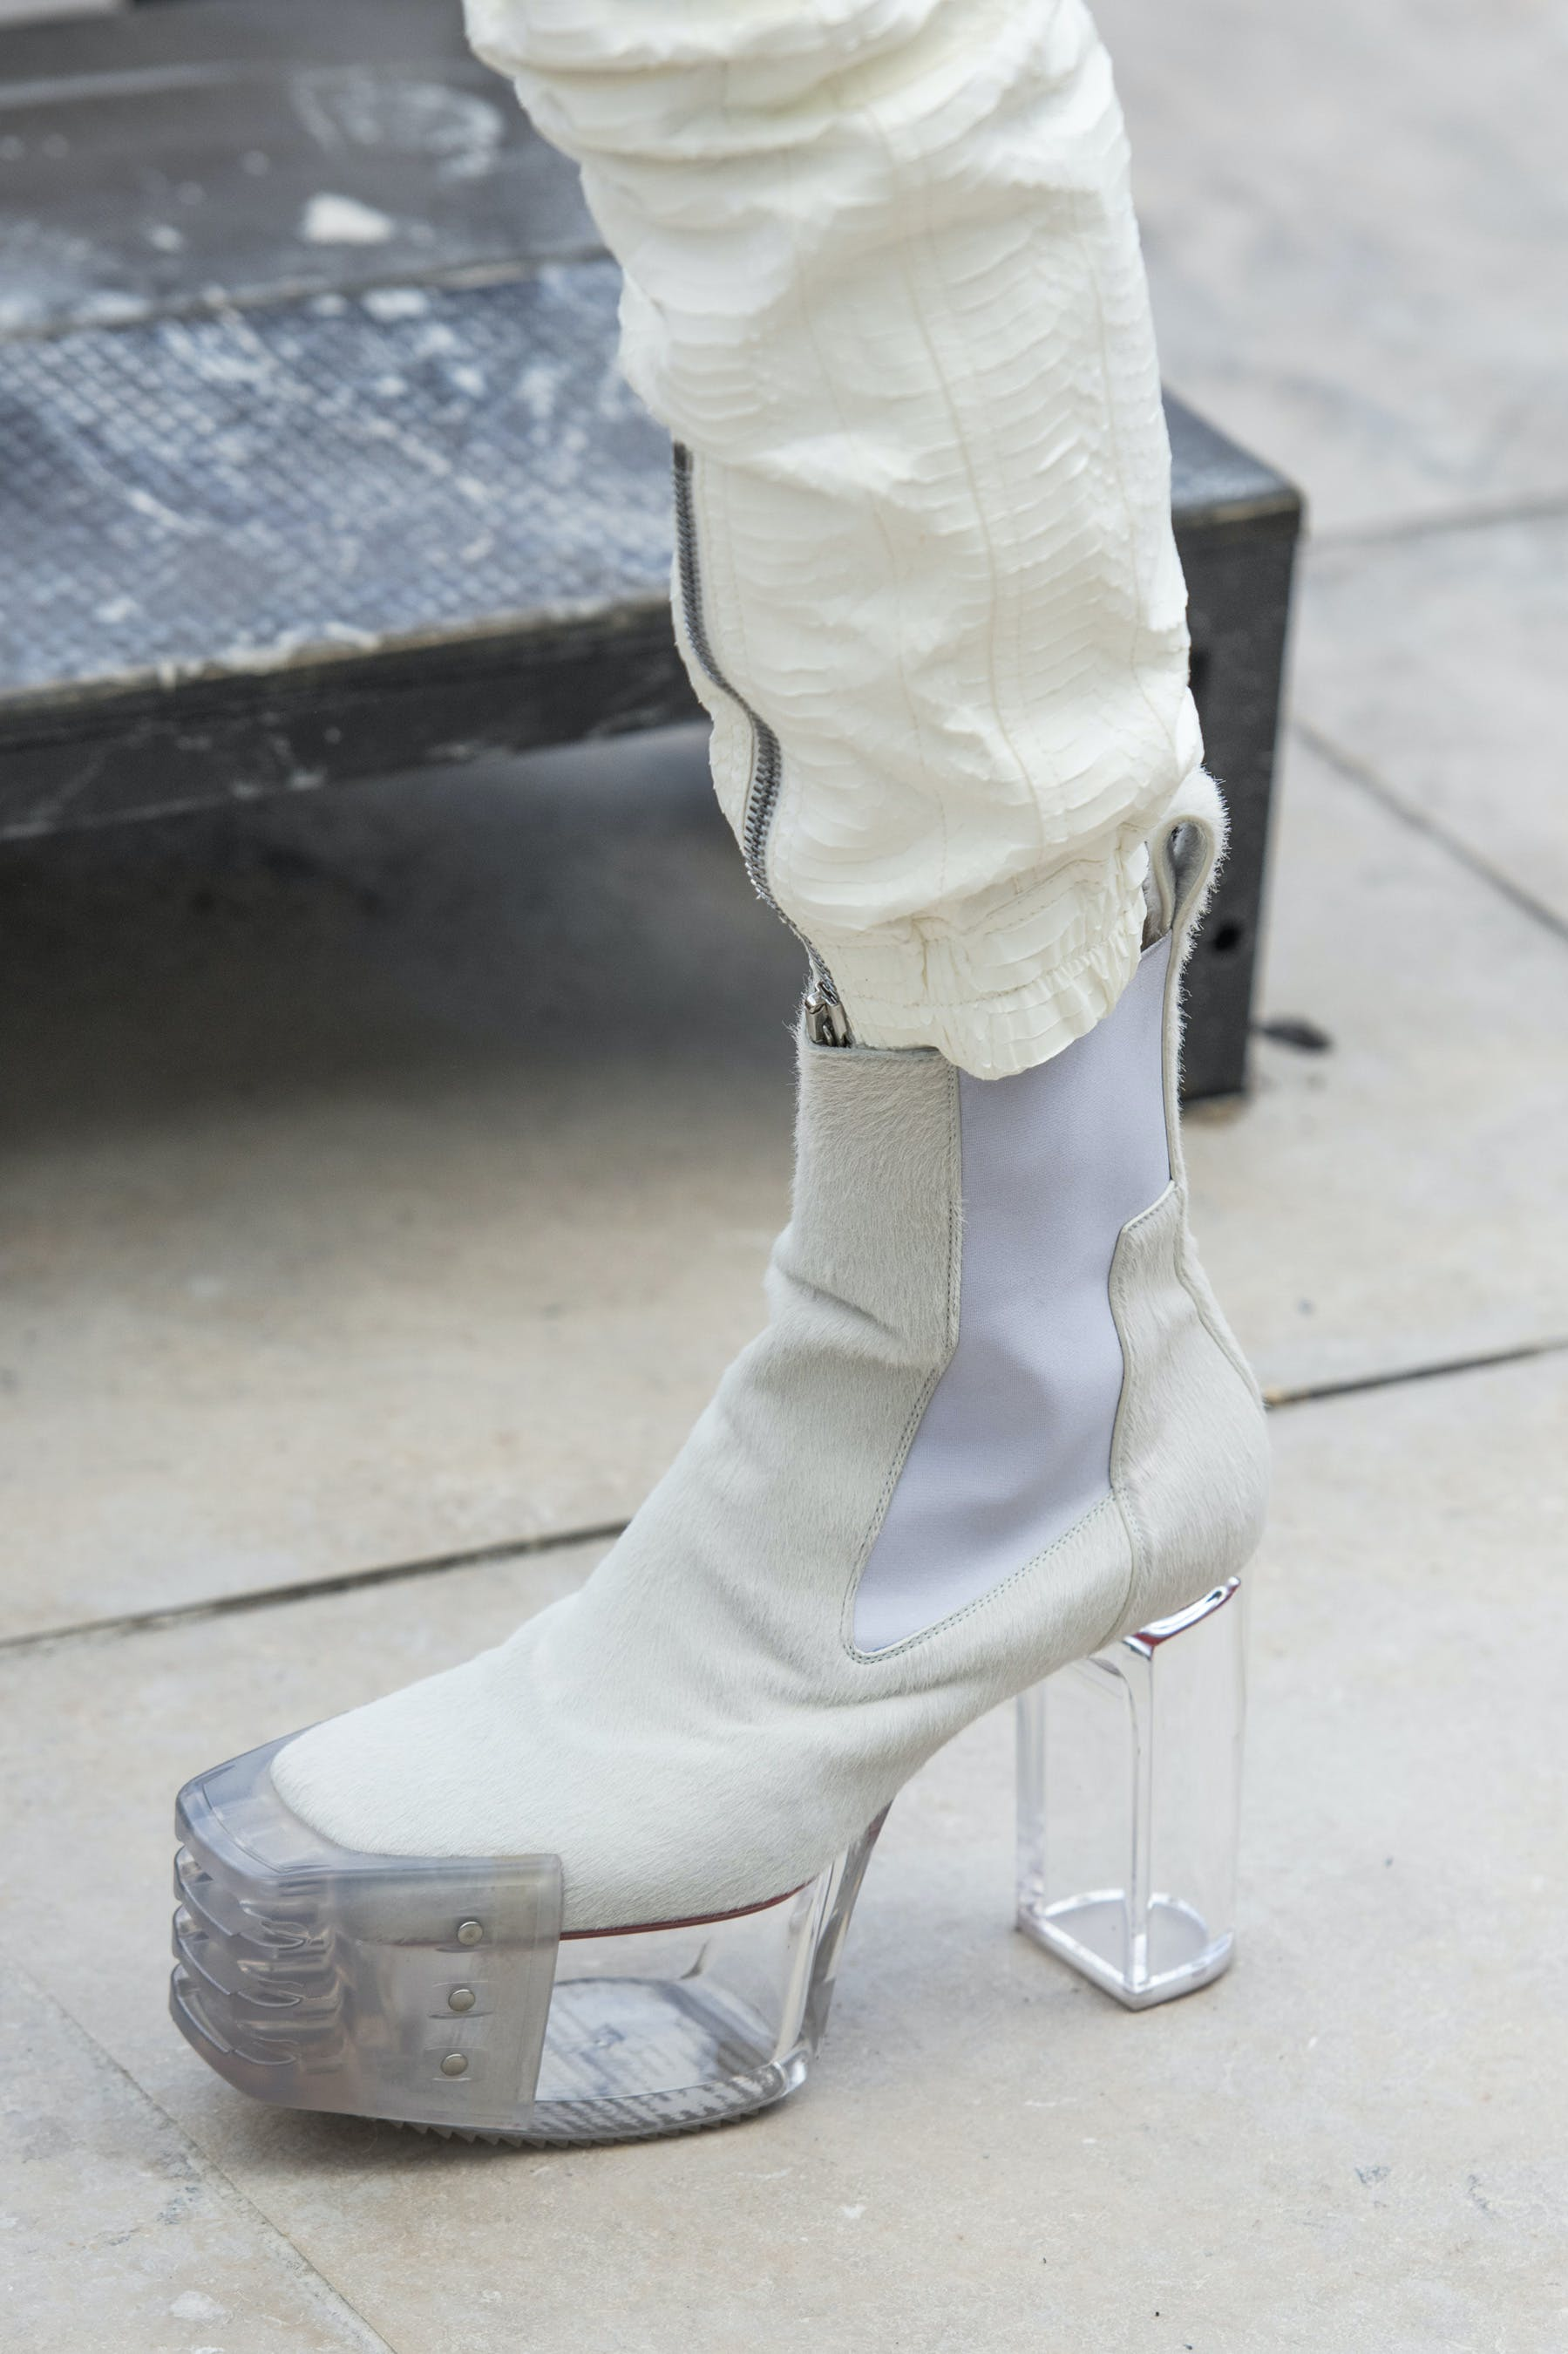 Rick Owens Runway Details Elastic Kiss Grill Boots In White With Transparent Heel Mens SS20 Tecautl